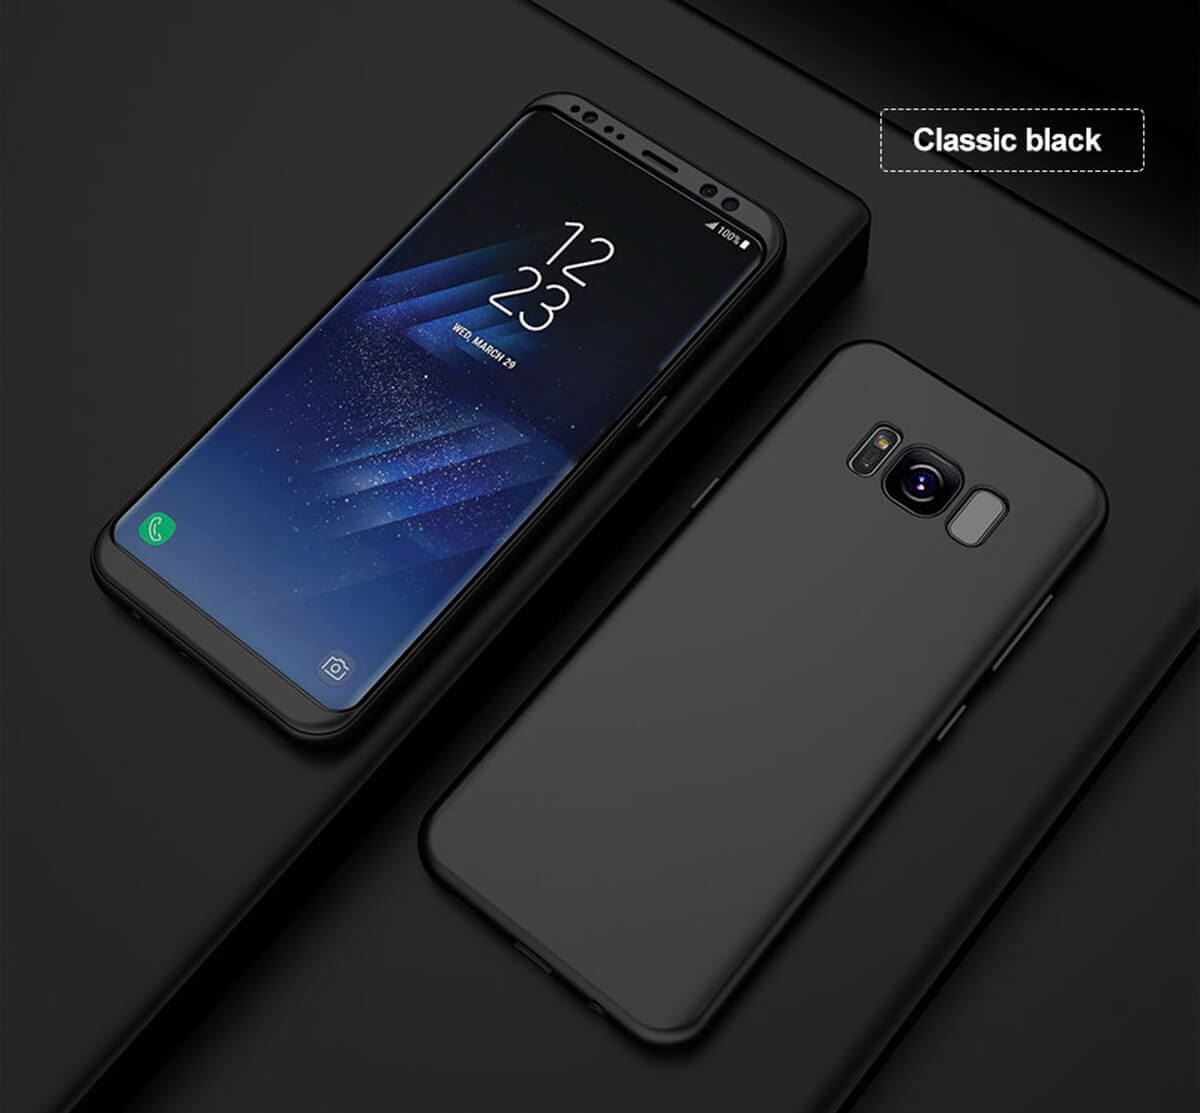 Image Result For Apple Store Iphone Pricea